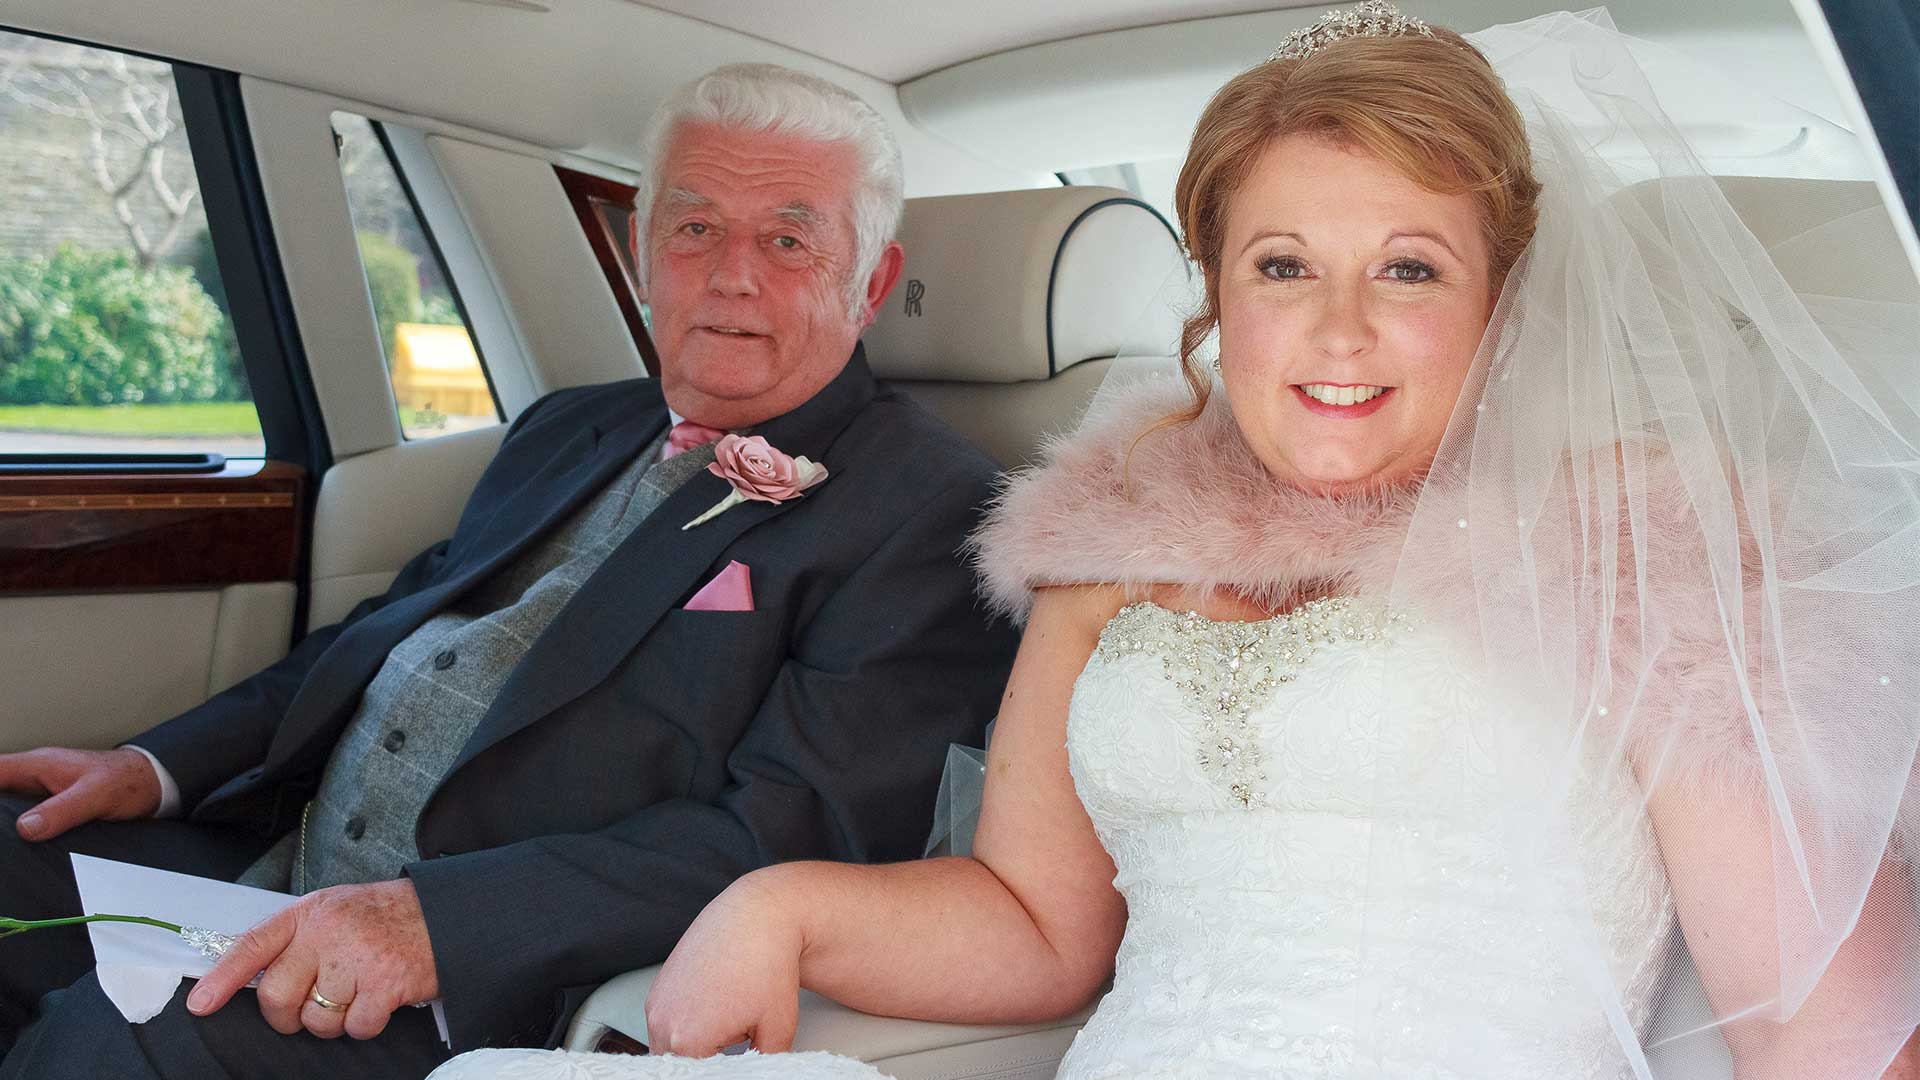 The bride and her Dad in the Rolls-Royce Phantom wedding car